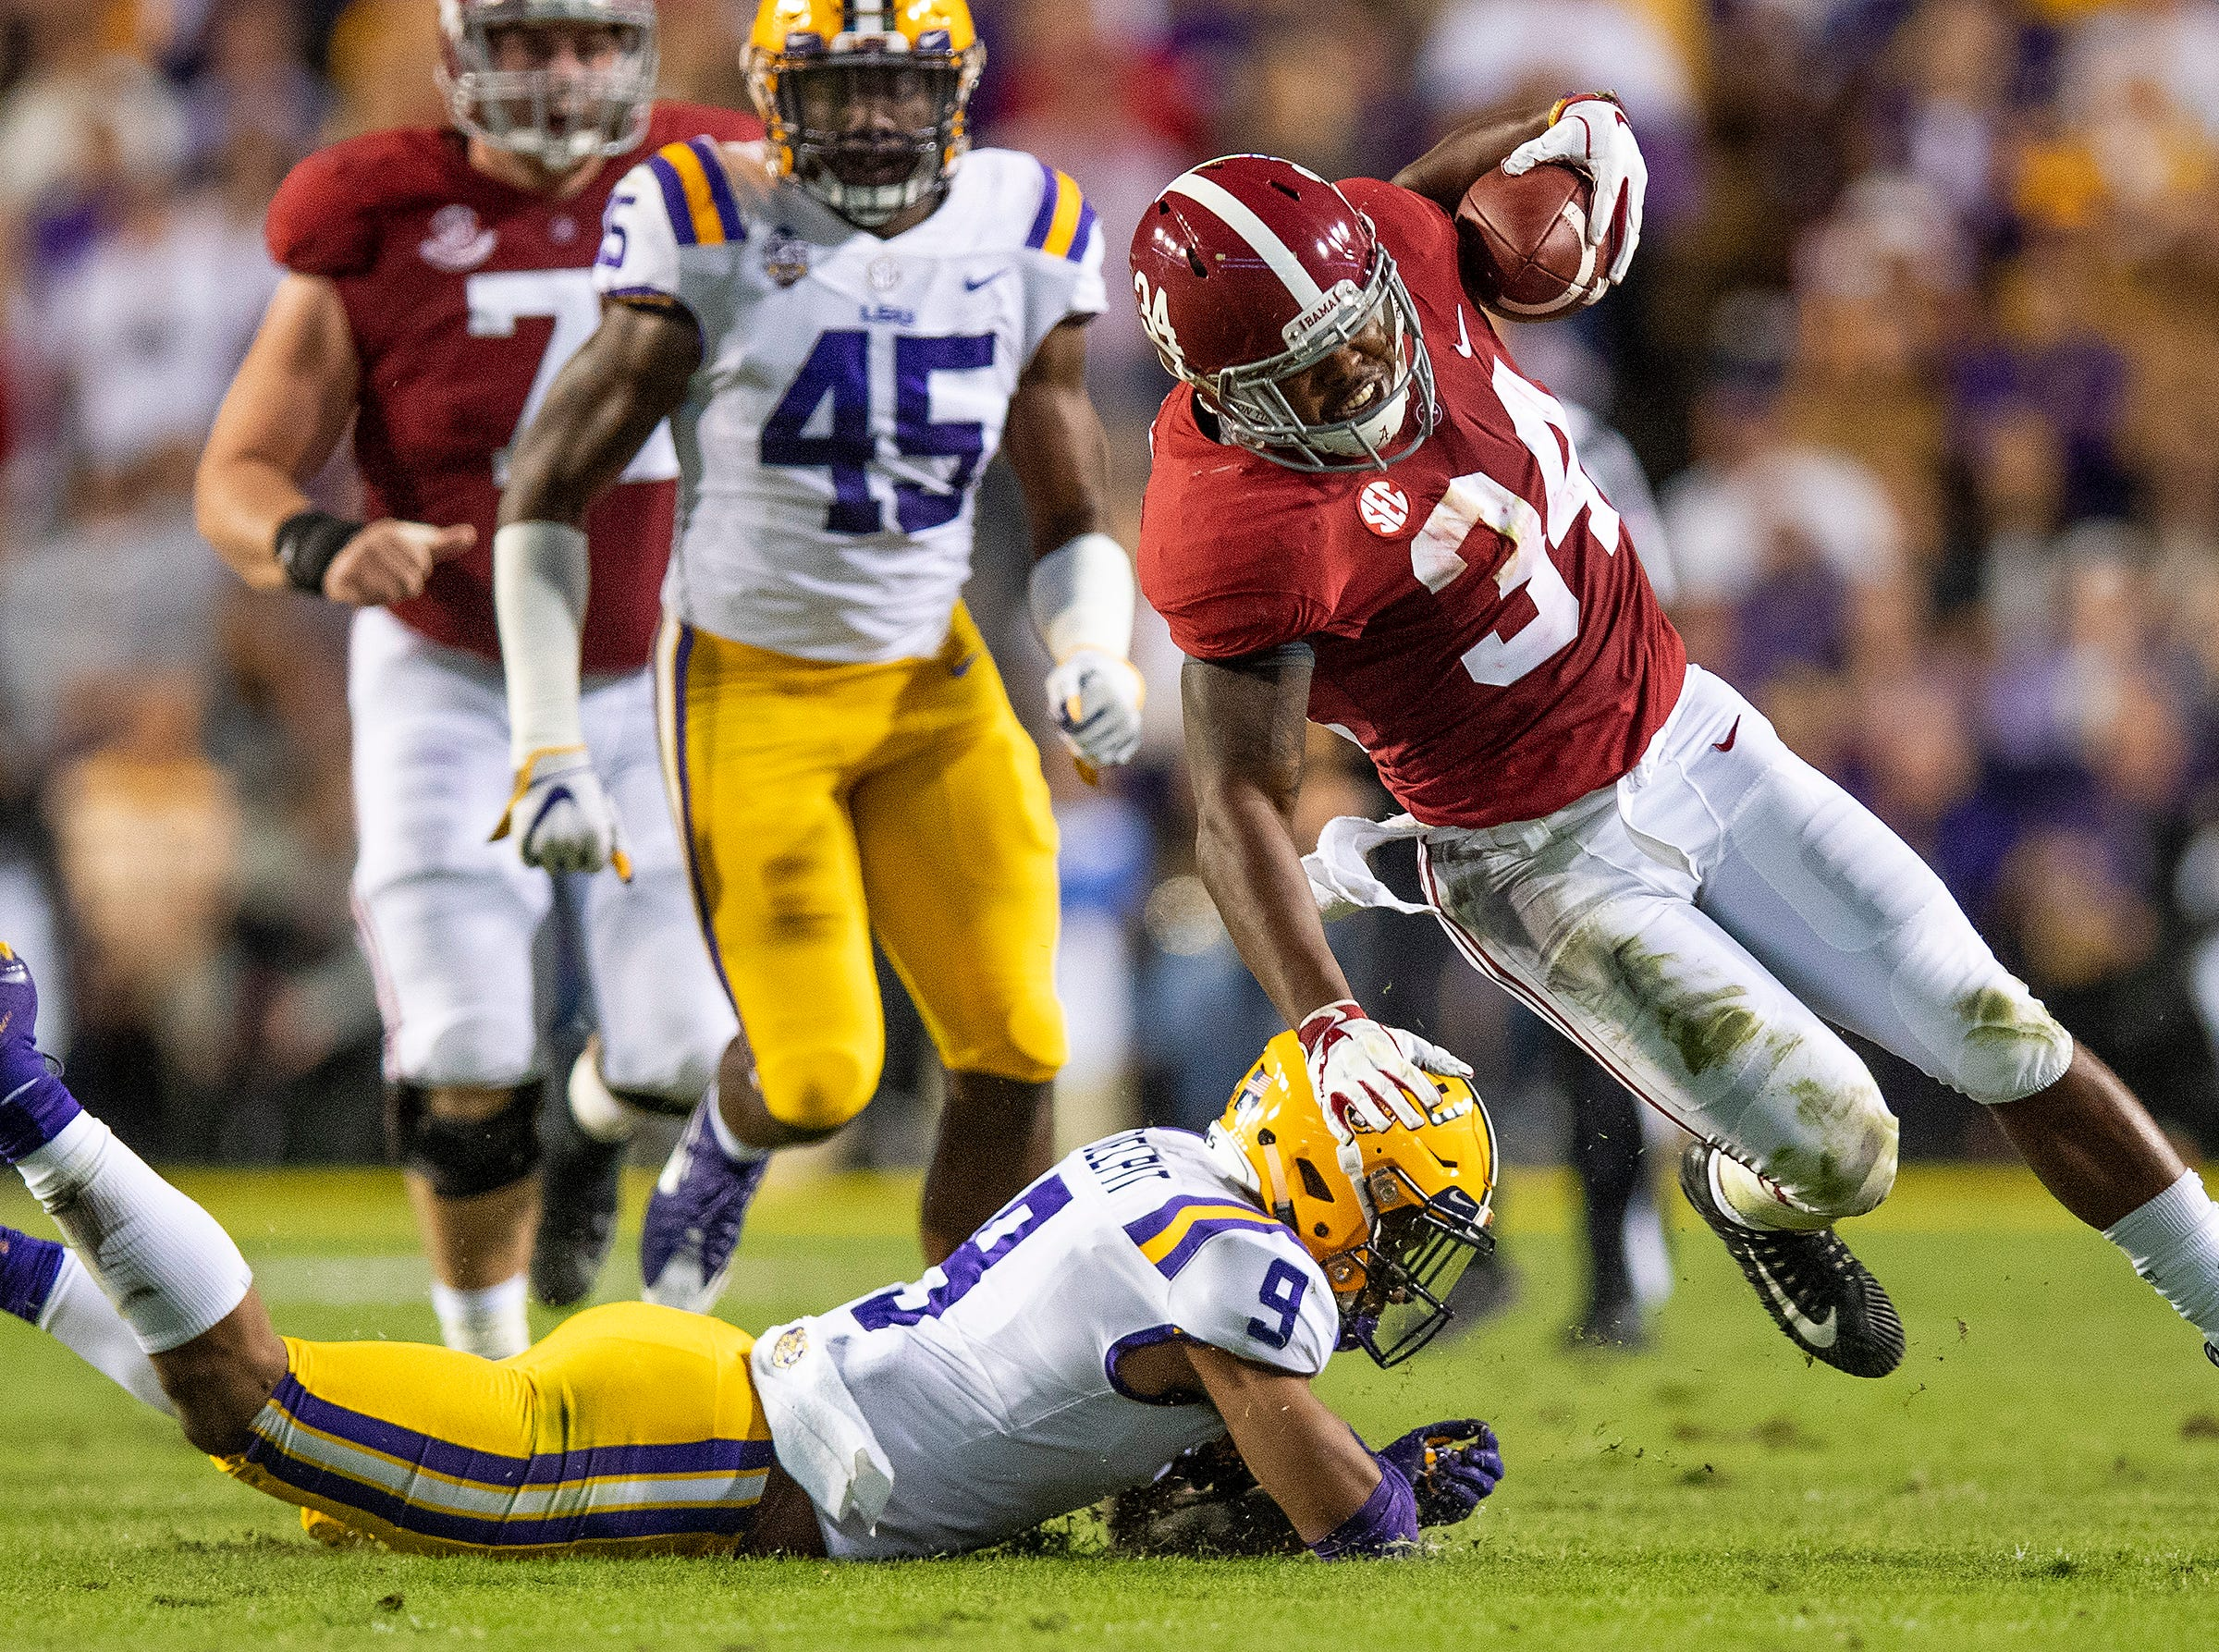 Alabama running back Damien Harris (34) is tripped up by Louisiana State University safety Grant Delpit (9) in first half action at Tiger Stadium in Baton Rouge, La., on Saturday November 3, 2018.